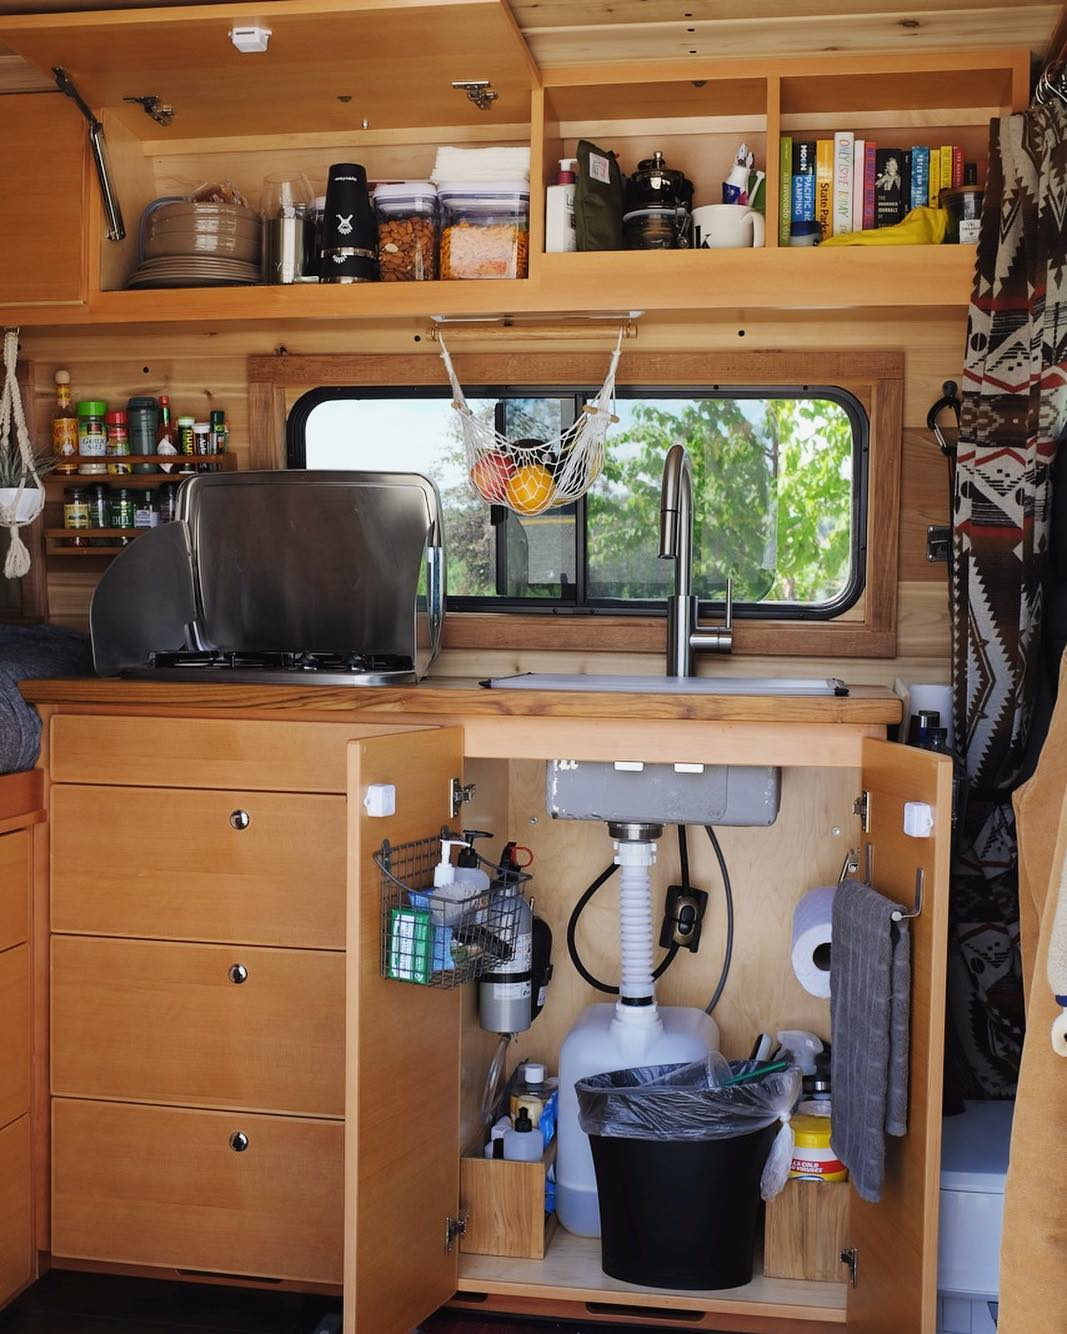 hight resolution of building a diy water system into a campervan conversion